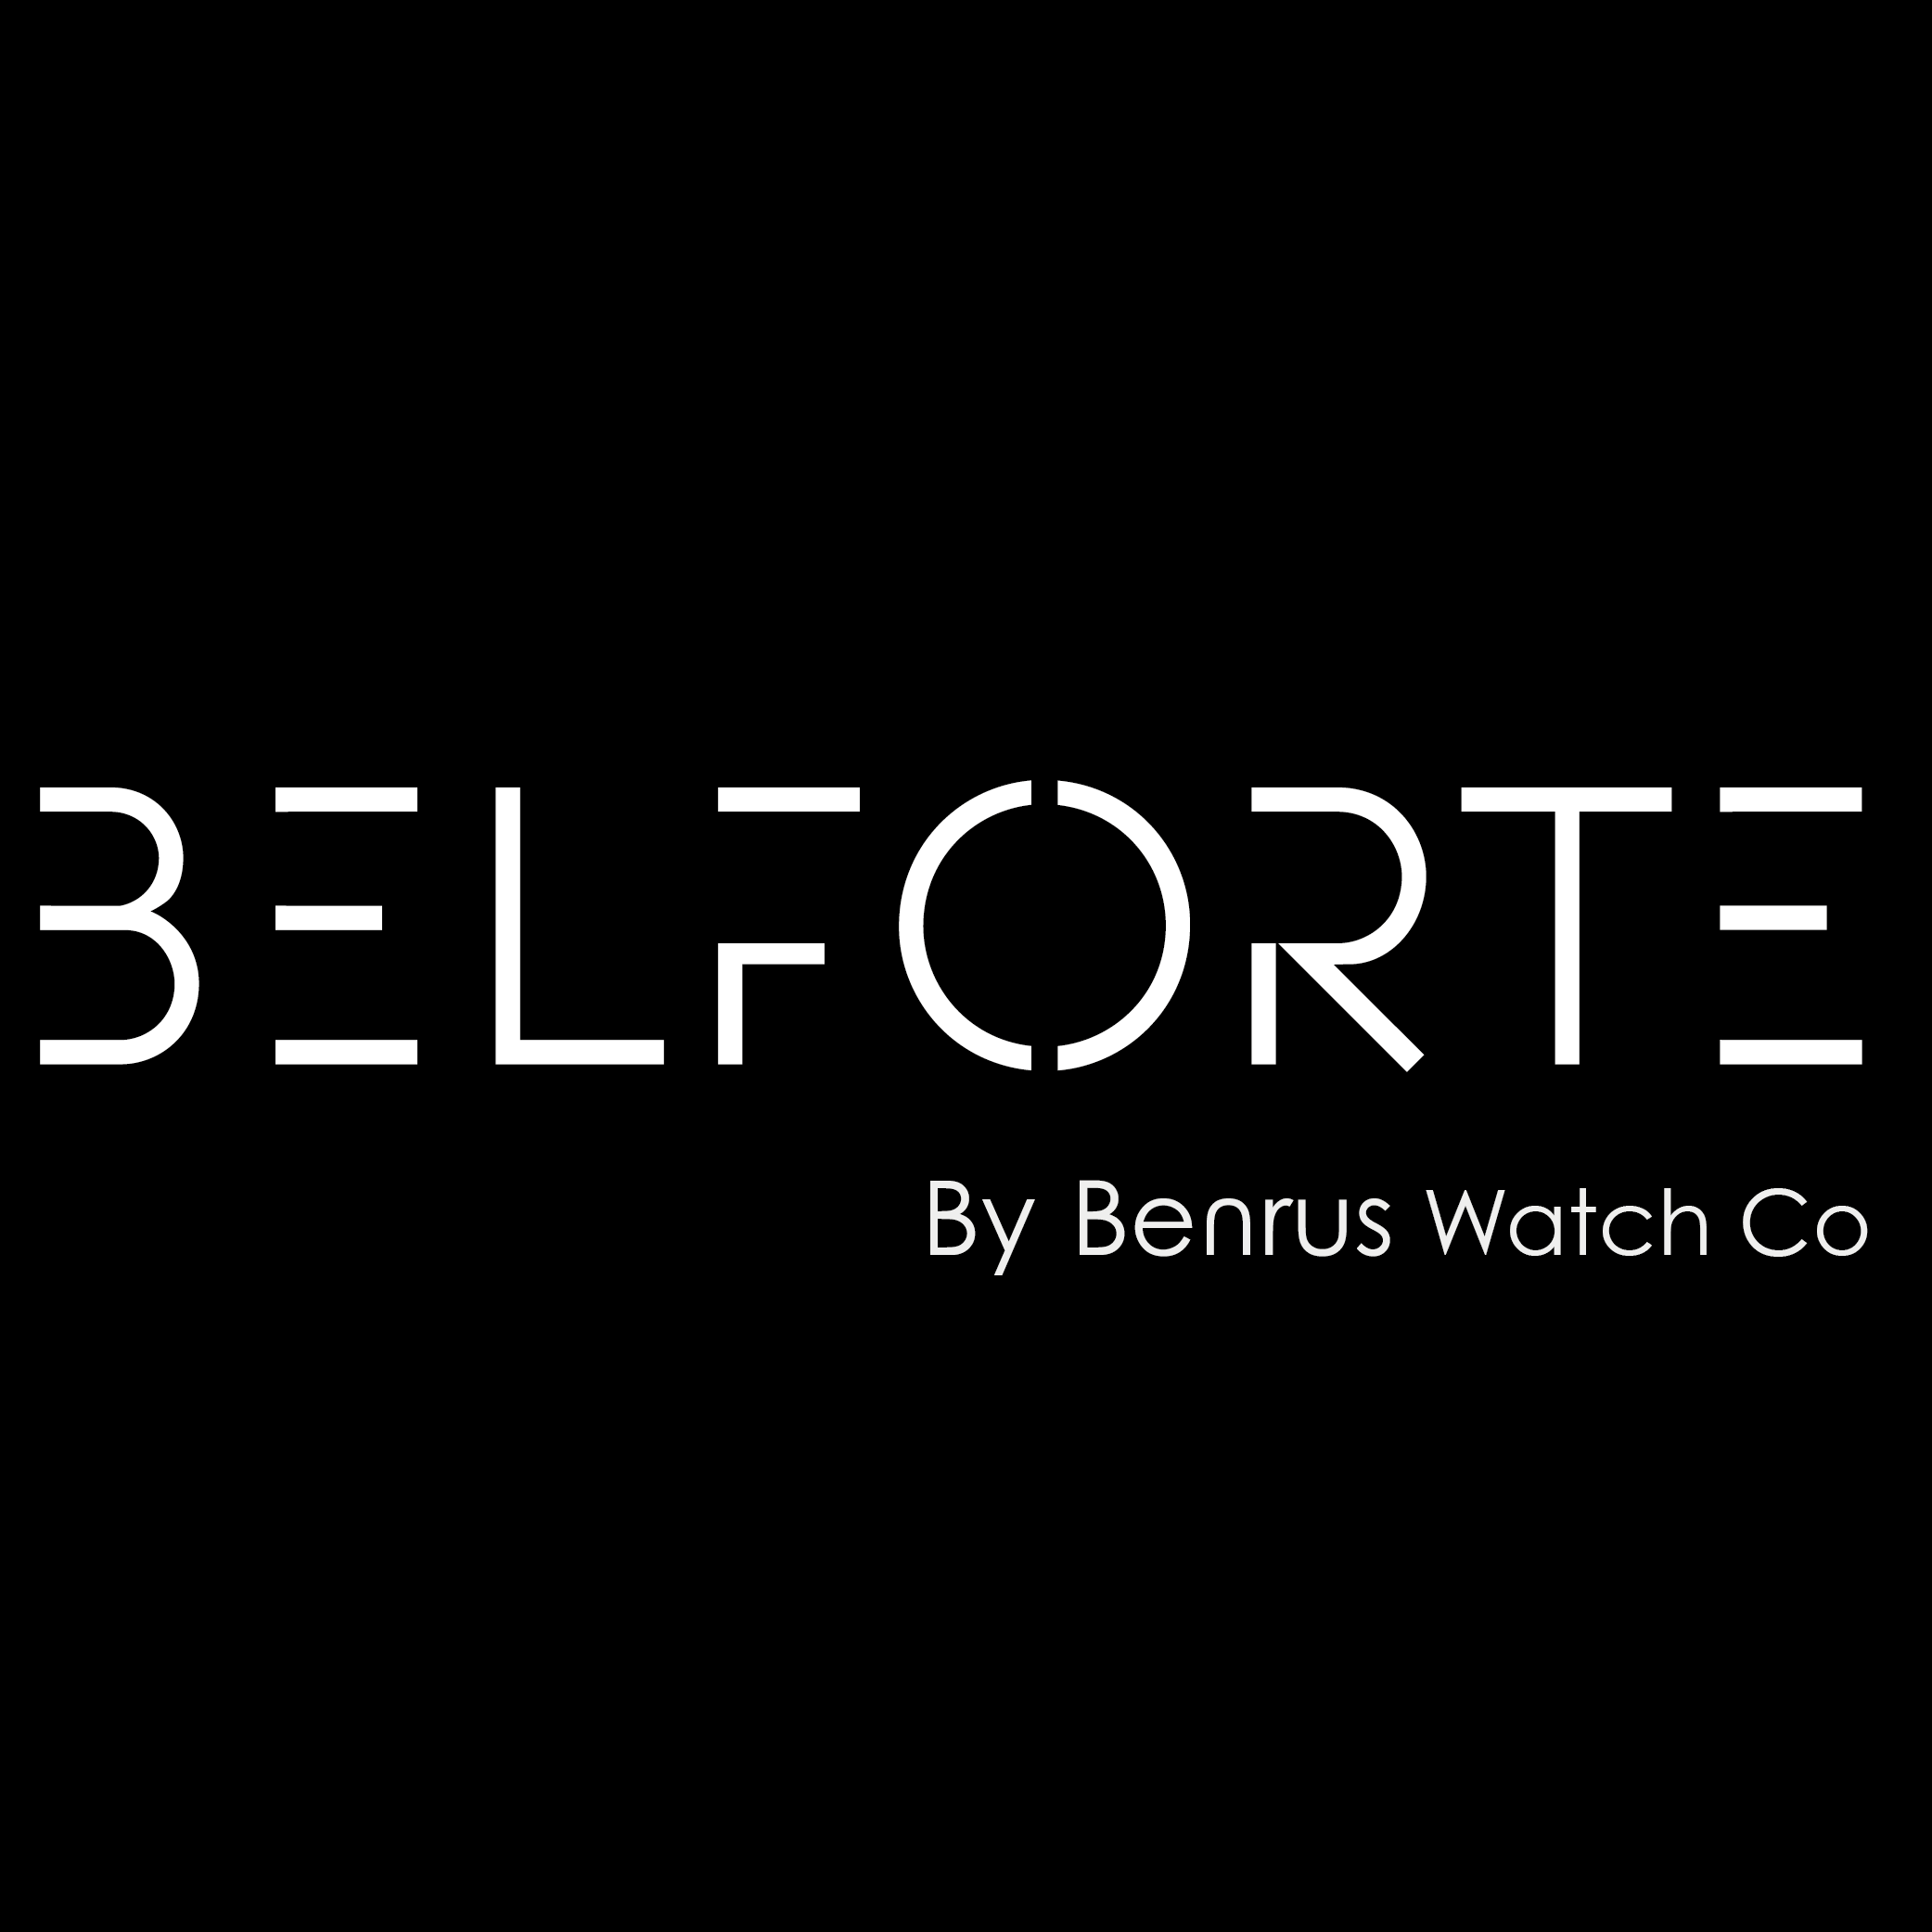 Belforte Watch by benrus watch